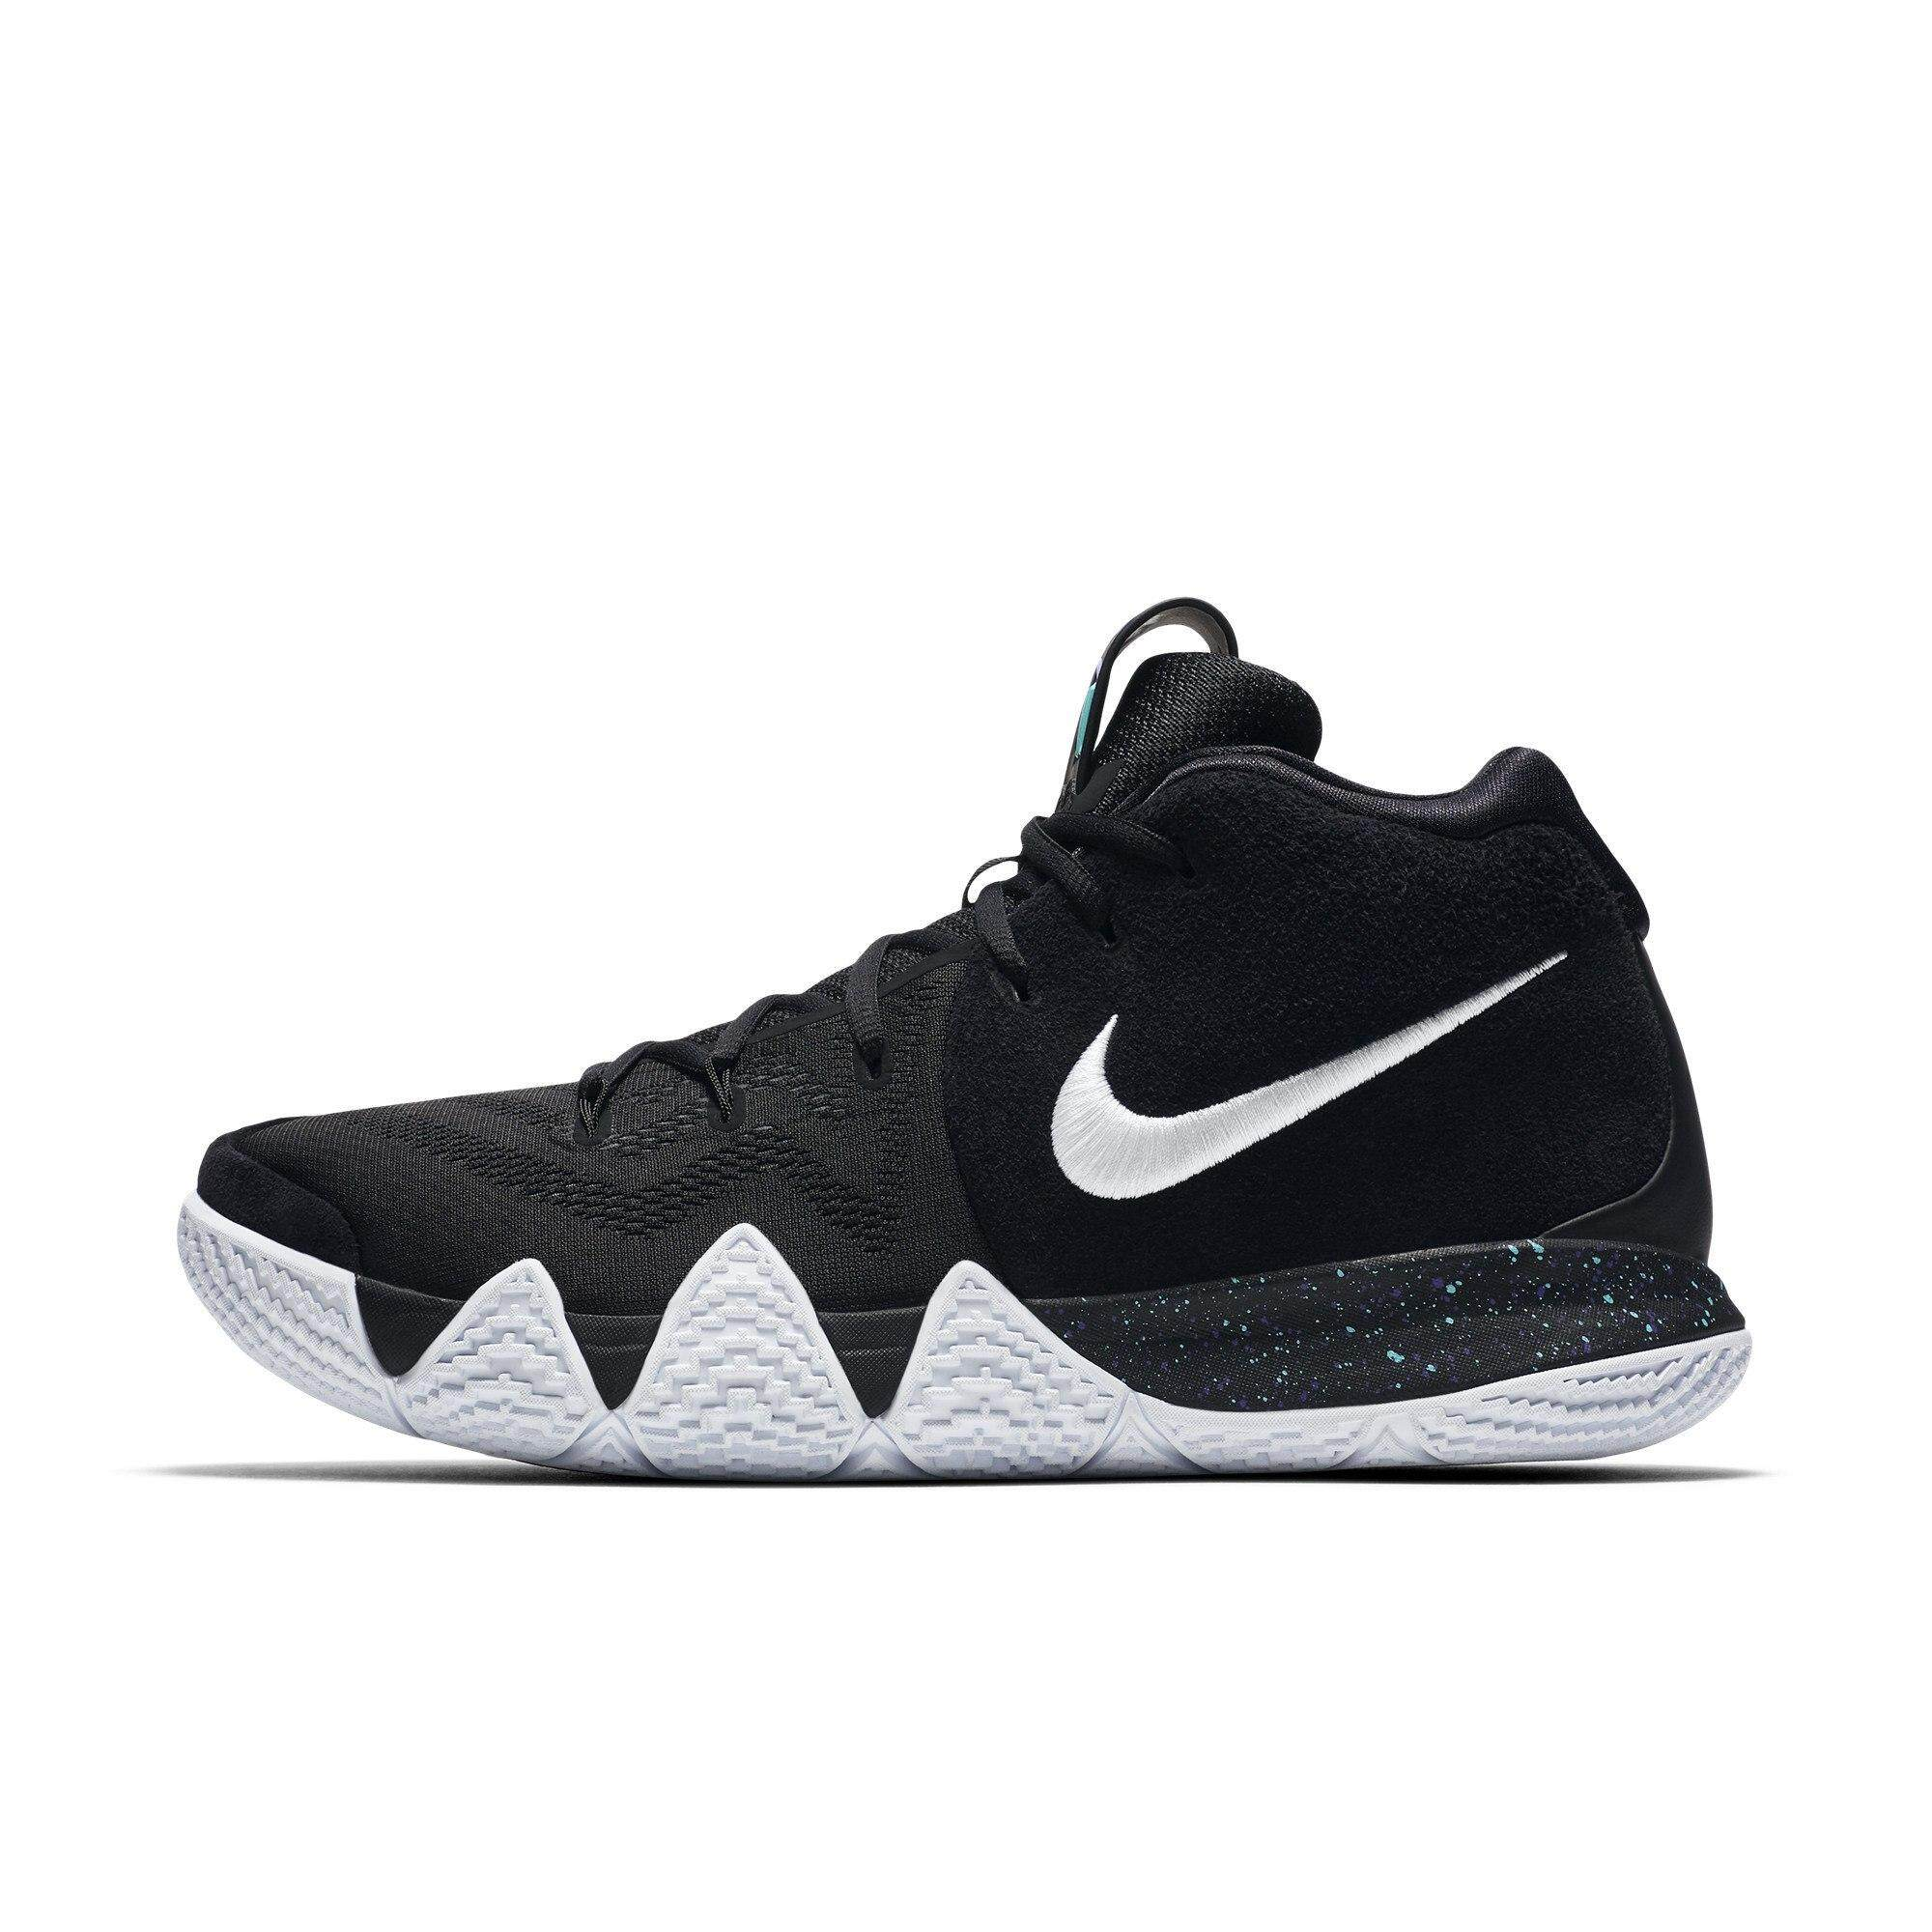 94e65bd26e95 nike Kyrie 2 EP Irving 4th Generation Men s Basketball Shoes Sport Outdoor  Sneakers